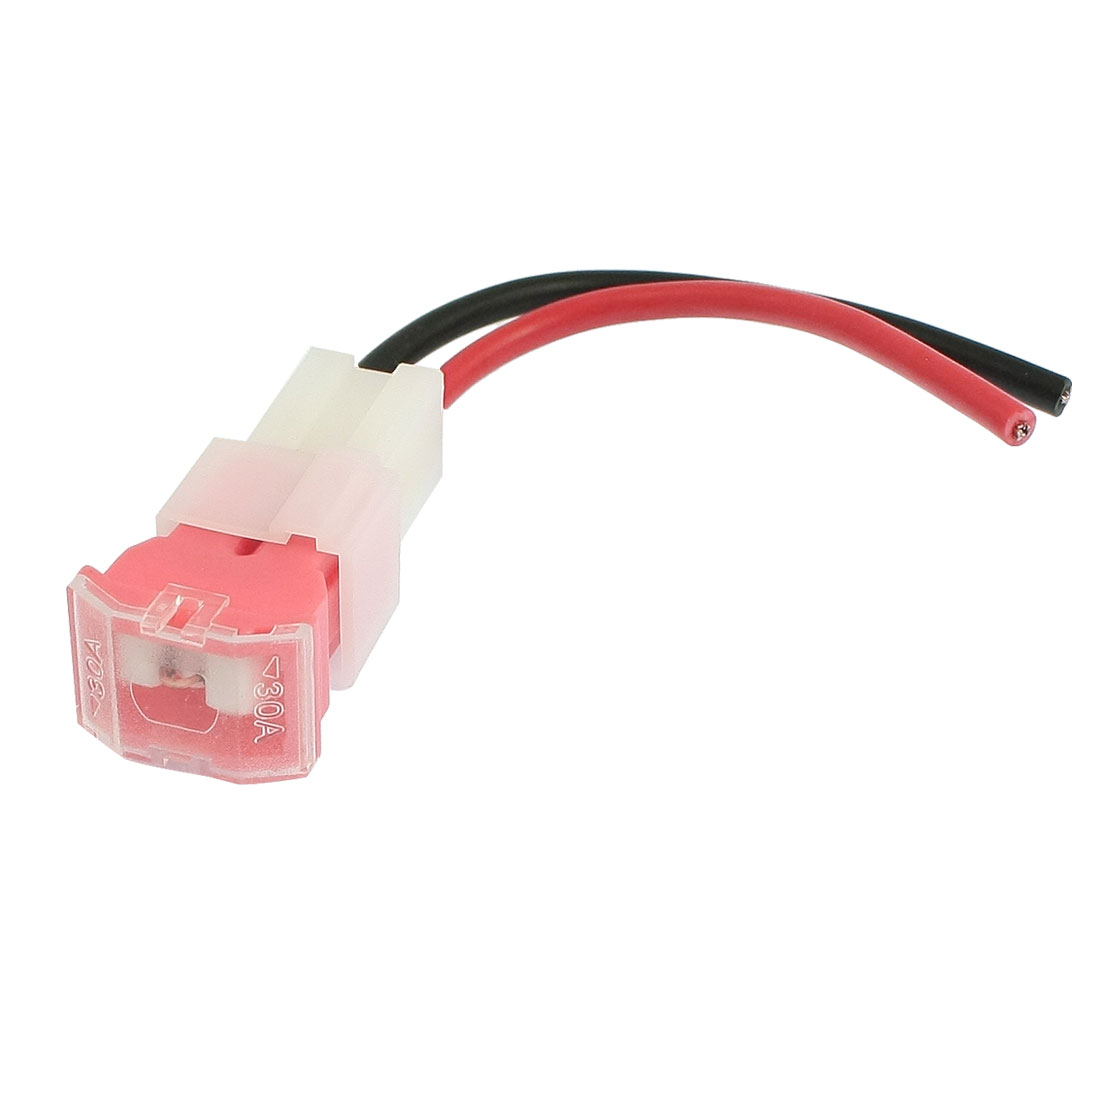 Automotive Vehicle Car 2 Cables 30A PAL Female Inline Fuse Holder Pink